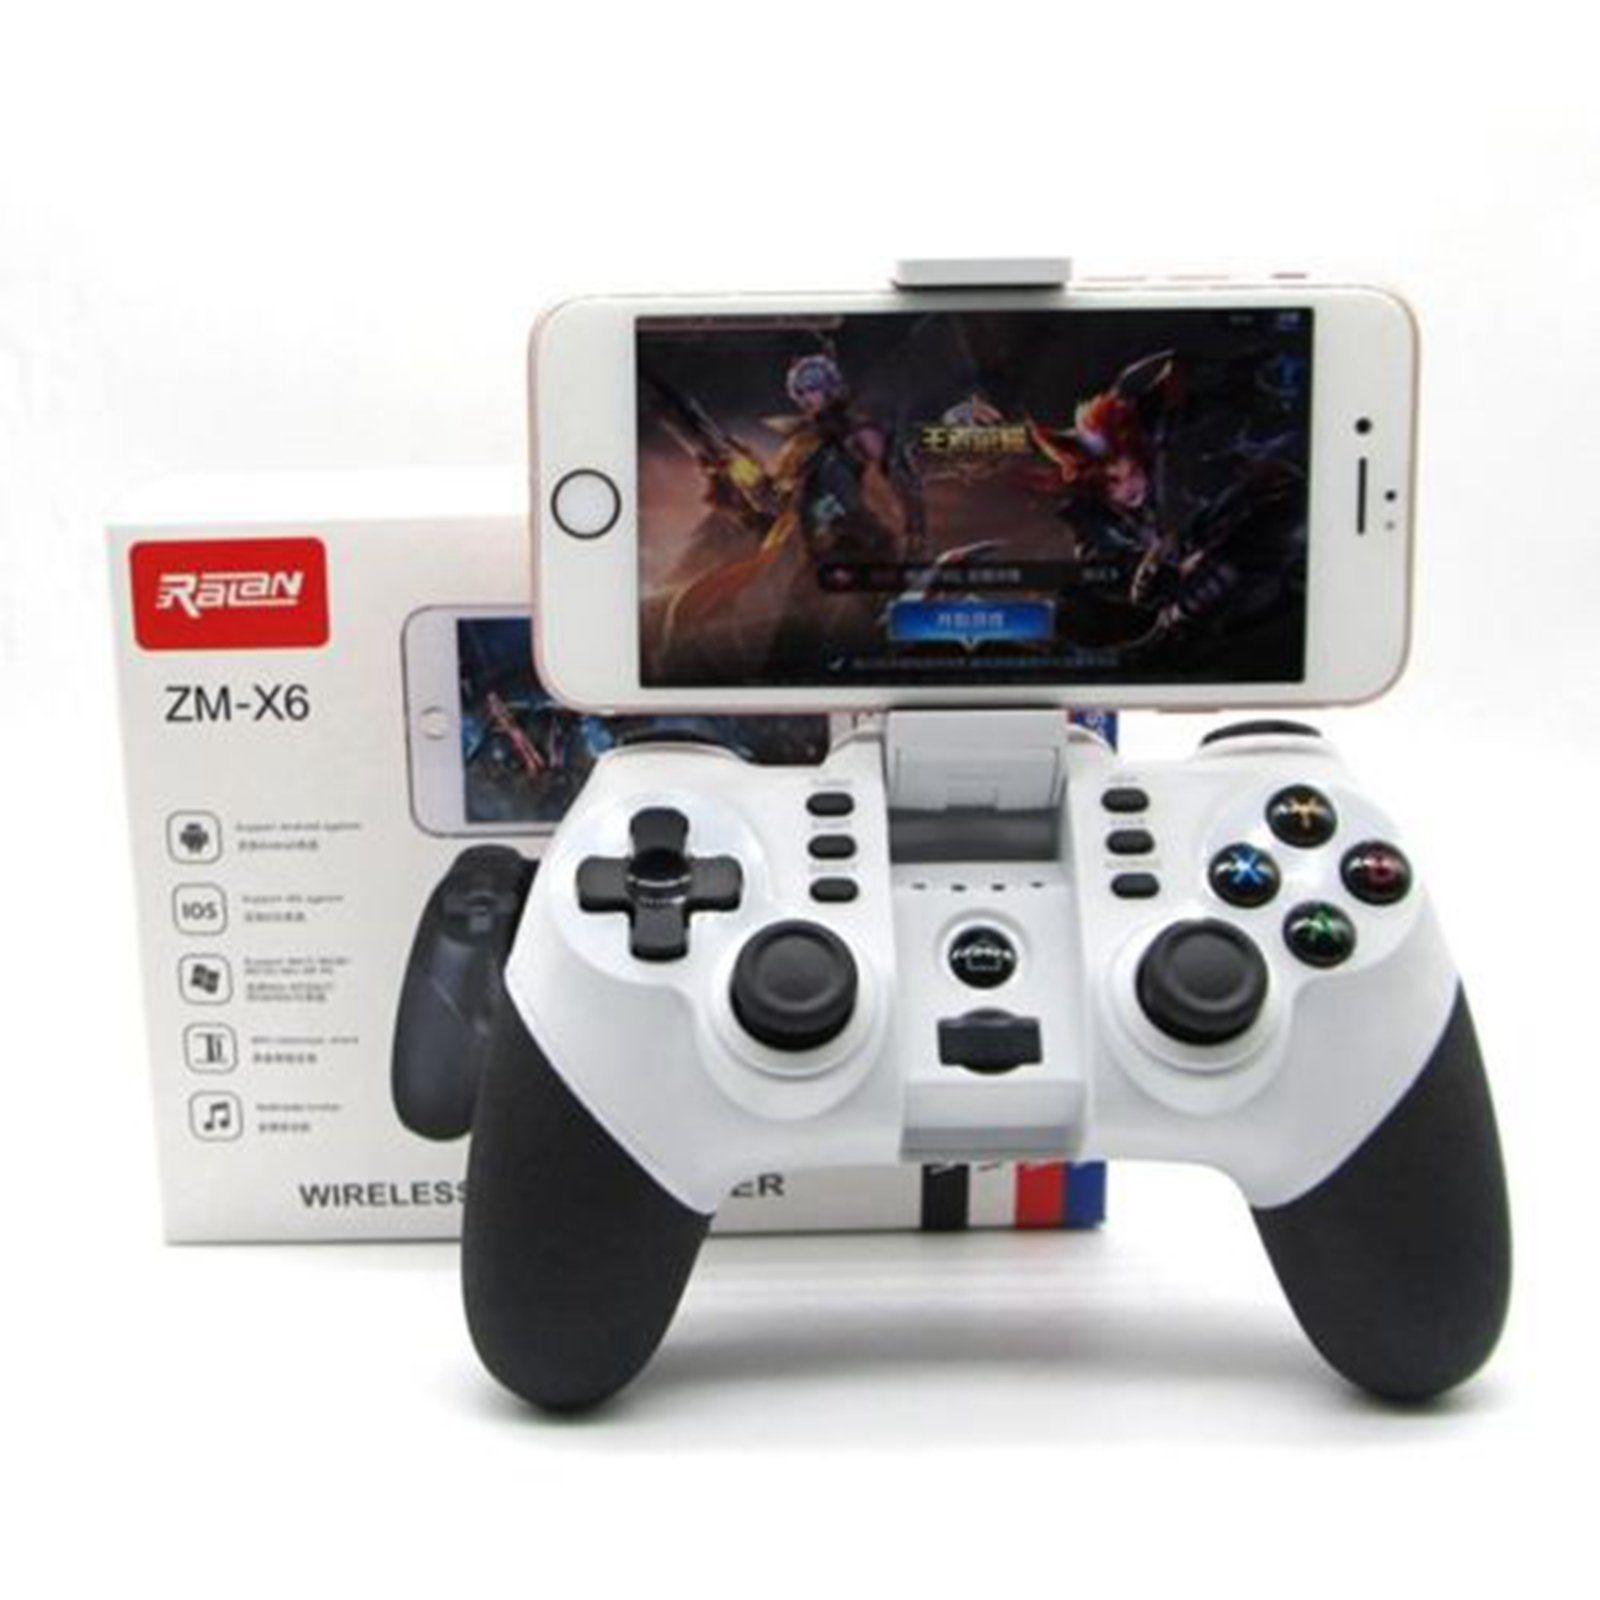 Professional Wireless Fortnite Controller Ninja Gaming Remote Mobile